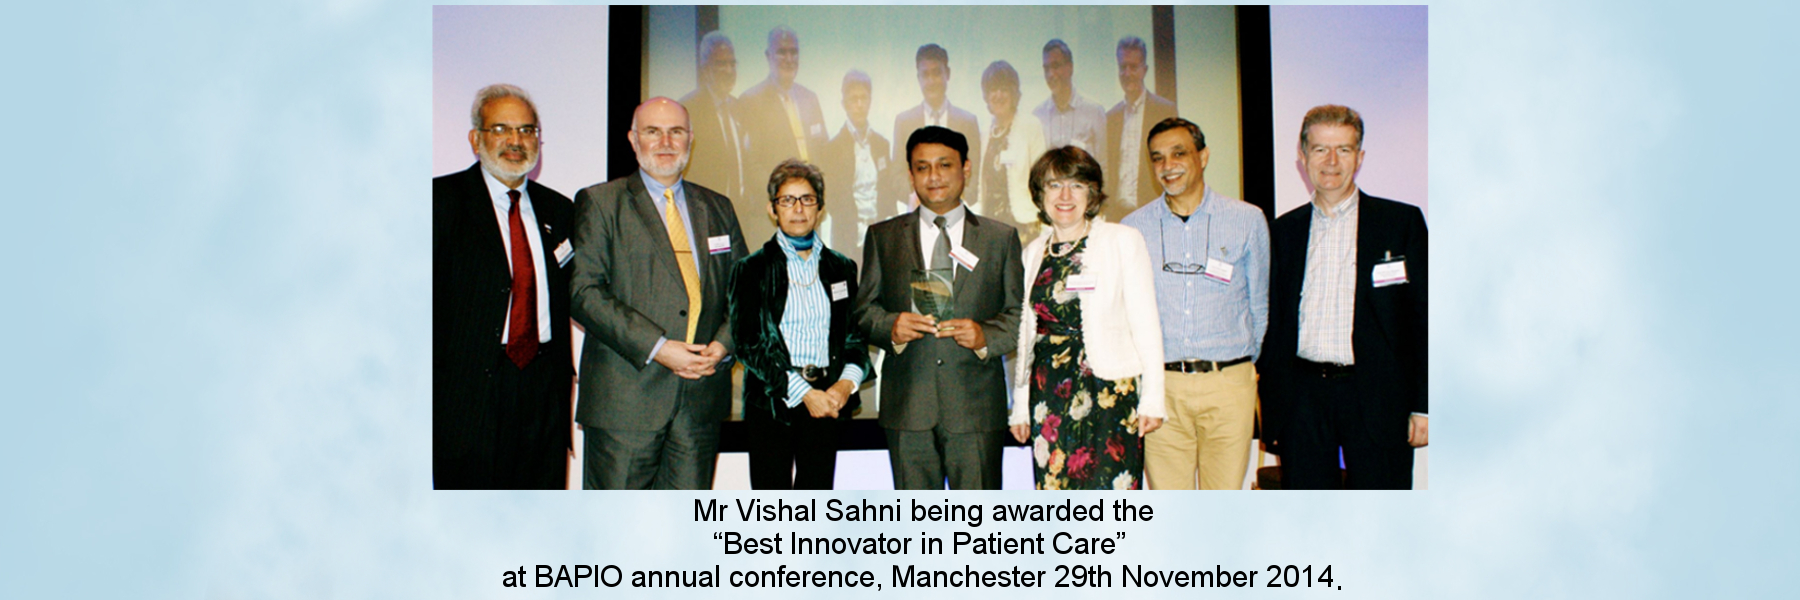 Best Innovator in Patient Care